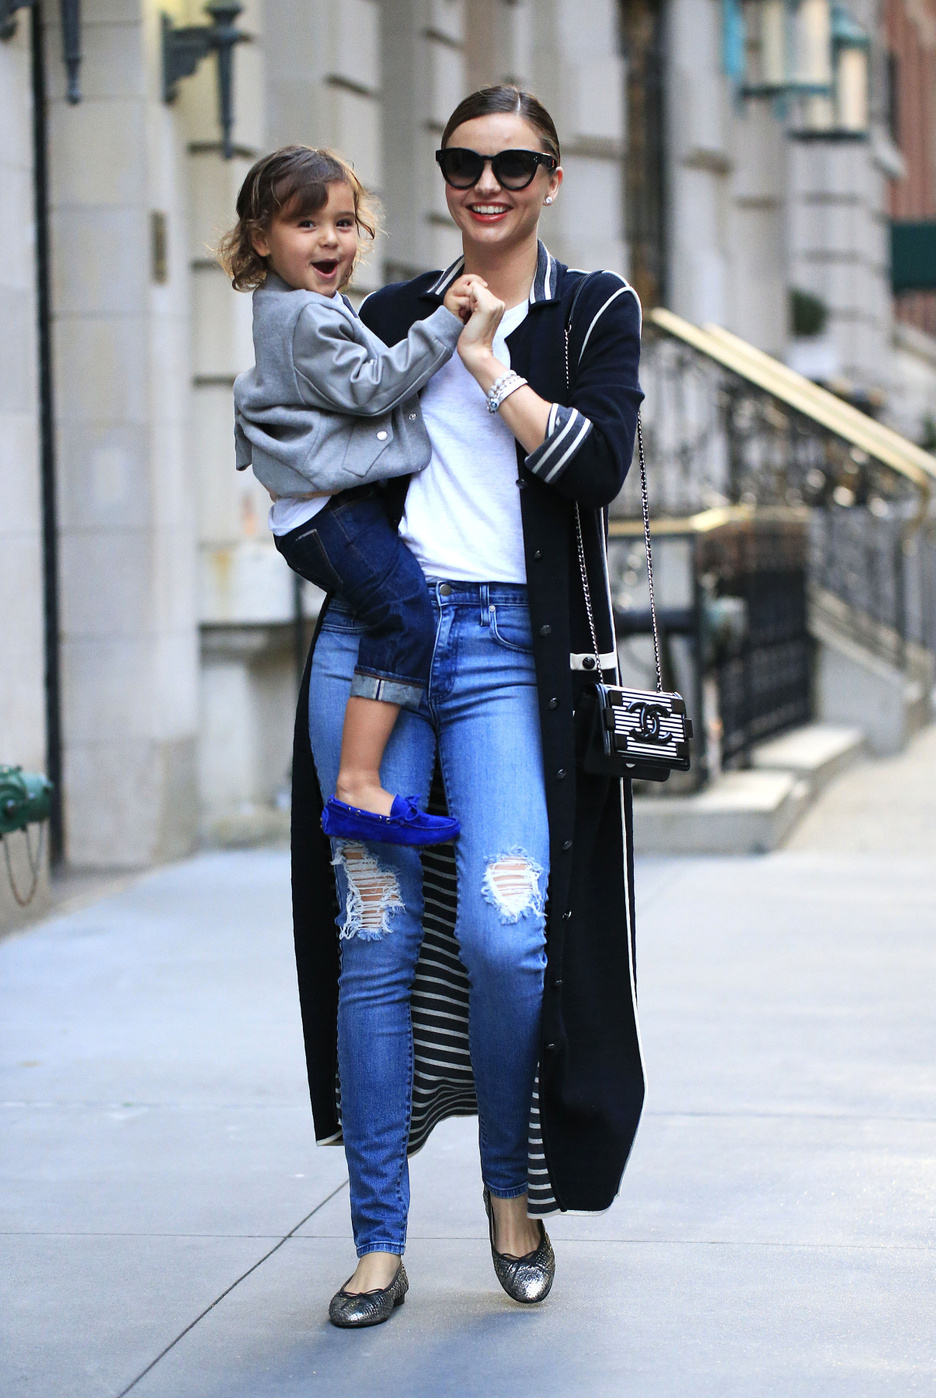 Miranda Kerr steps out with son Flynn Bloom for dinner before her birthday in New York City